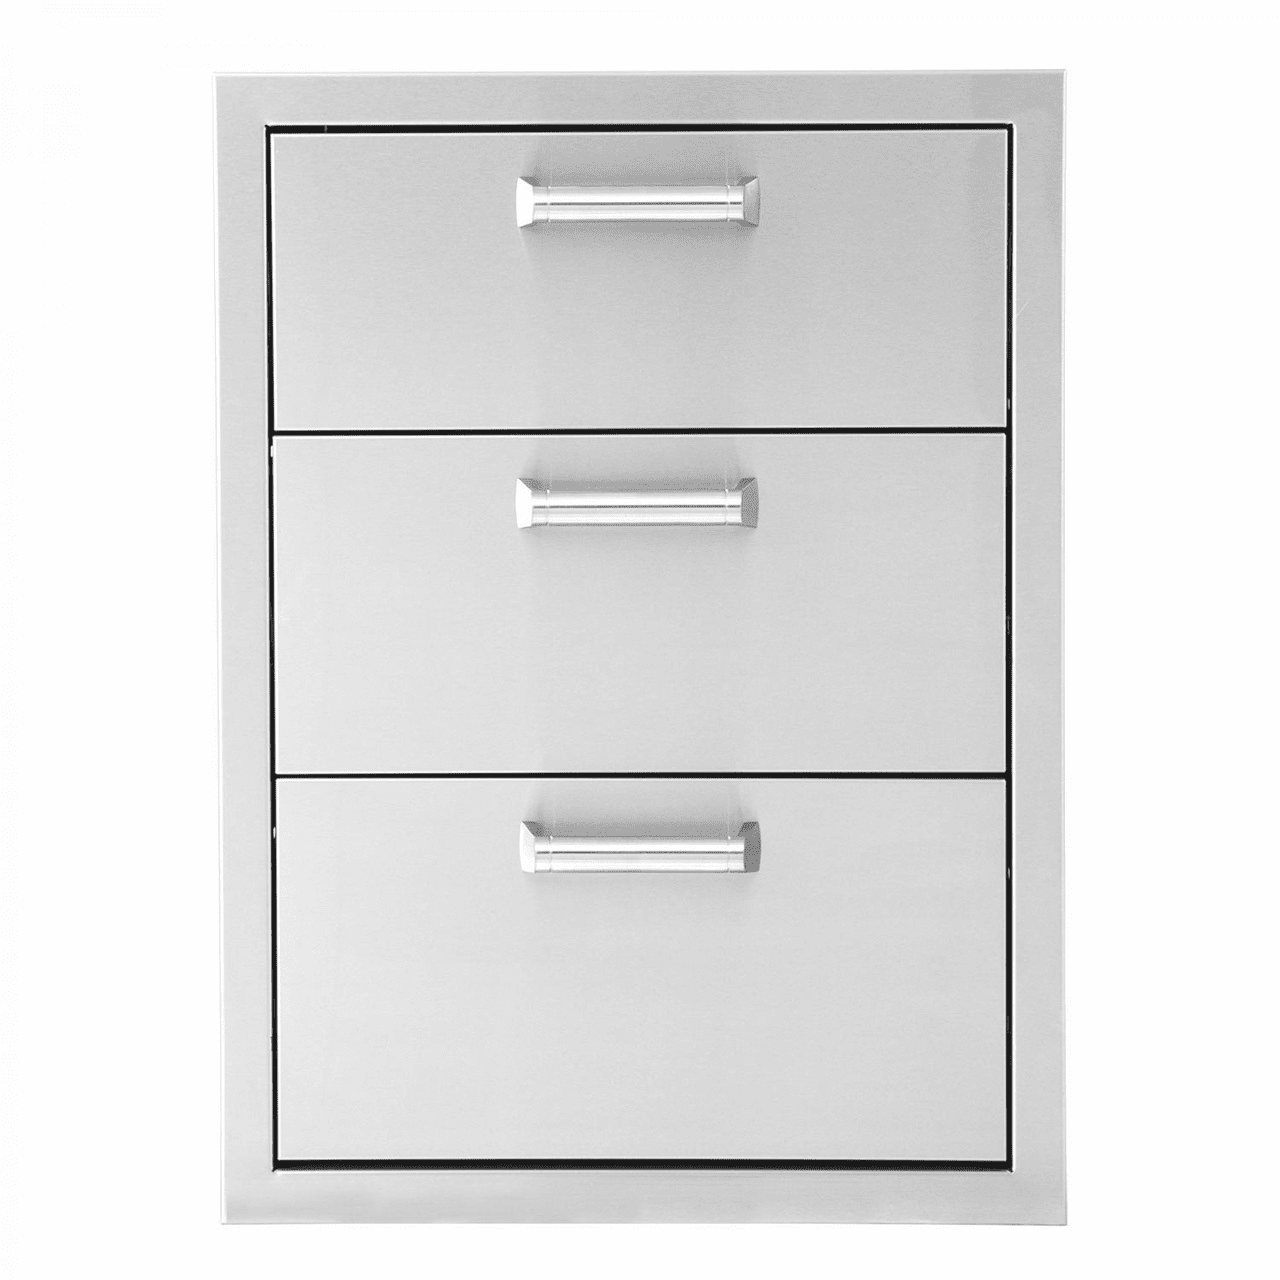 PCM 350H 3DR 3 Drawer for island Access Stainless Steel